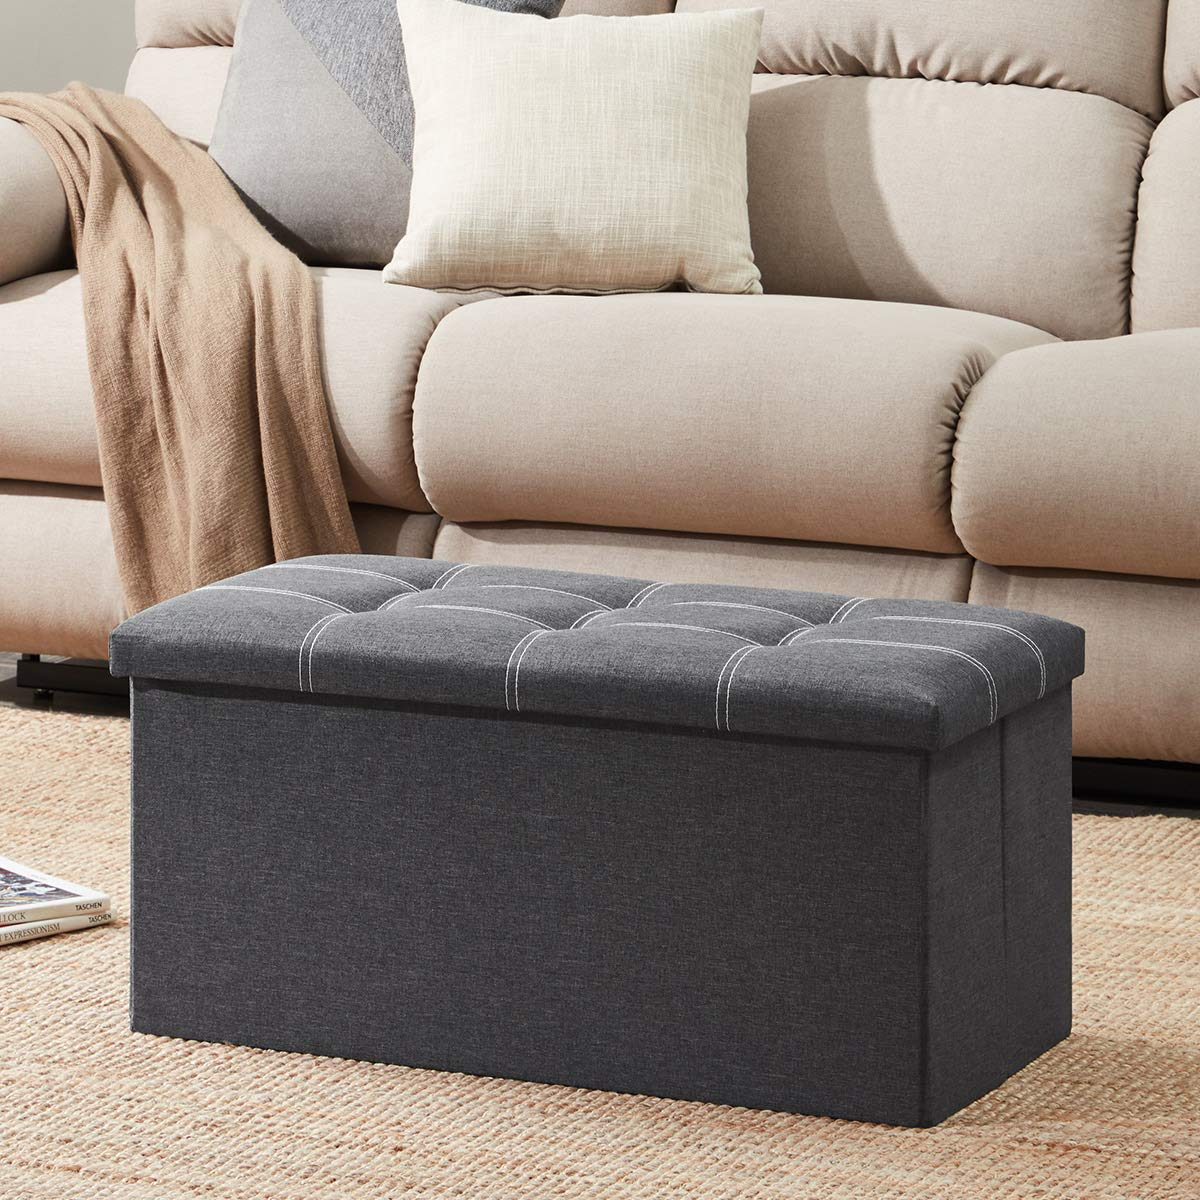 YOUDENOVA 30 inches Storage Ottoman Bench, Foldable Footrest Shoe Bench with 80L Storage Space, End of Bed Storage Seat, Support 350lbs, Linen Fabric Grey by YOUDENOVA